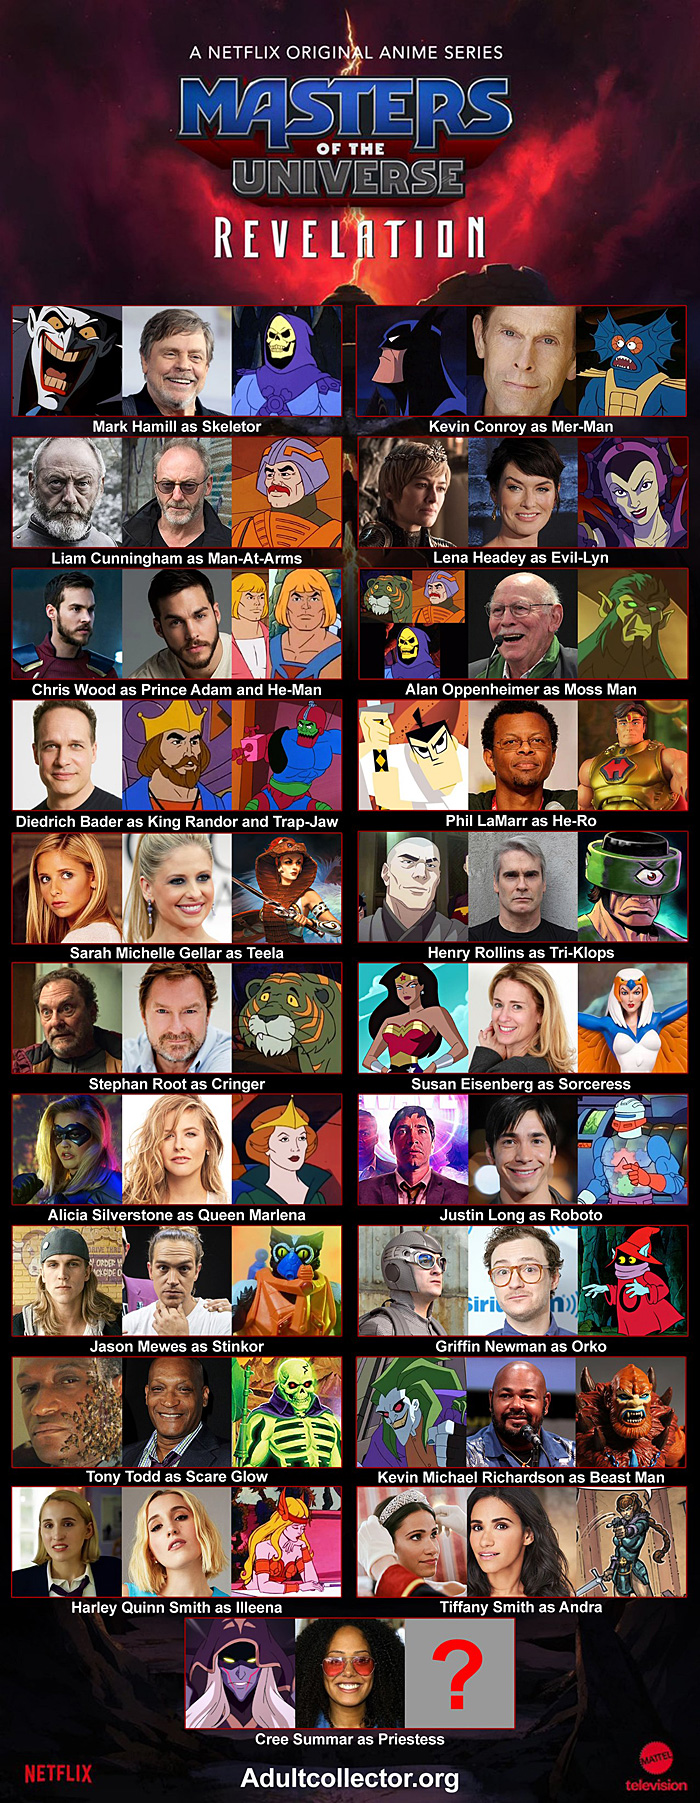 Cast of Masters of the Universe: Revelation